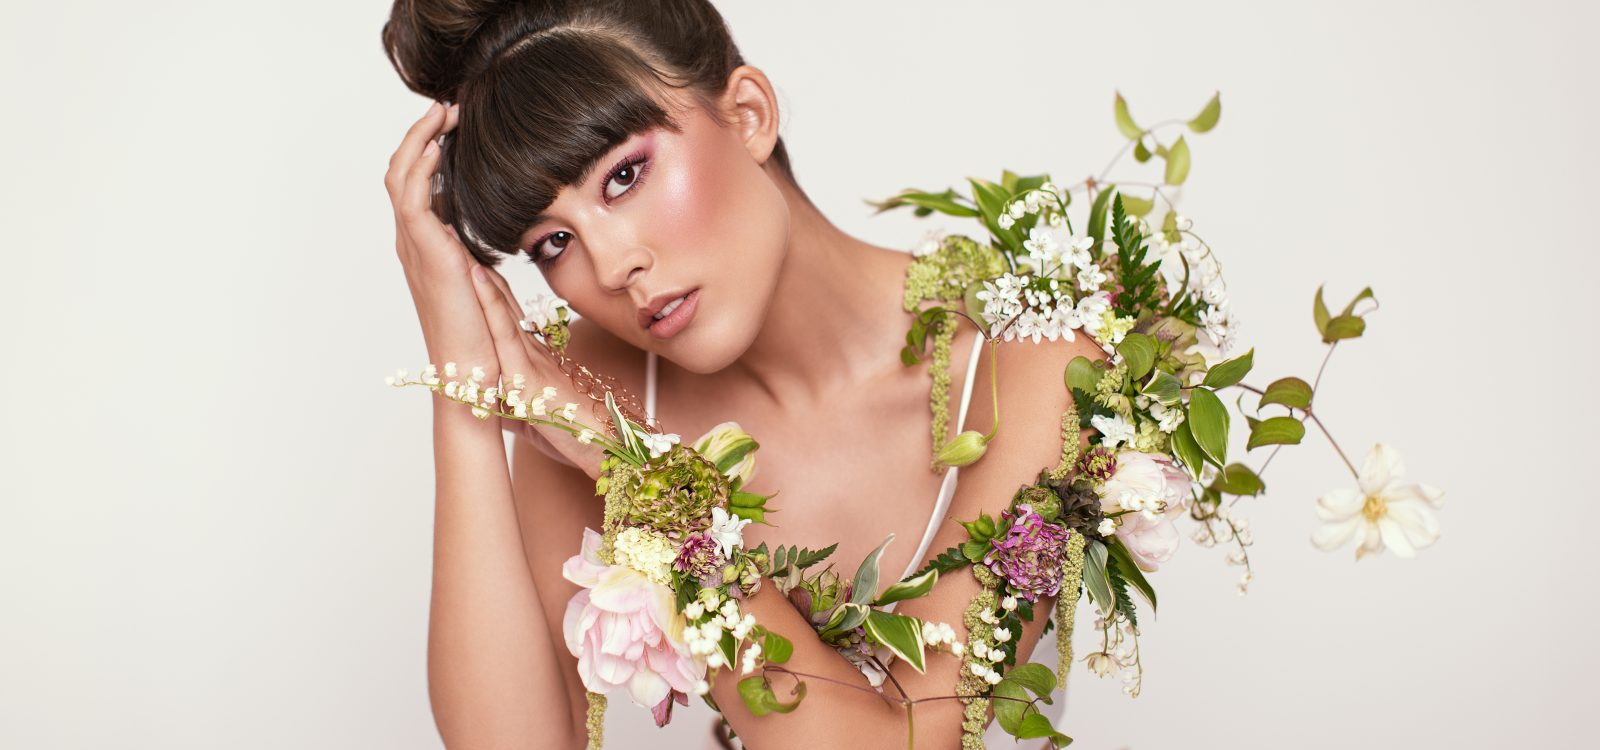 Floral Couture by Tobey Nelson image by Shannon Beauclair Photography (3)